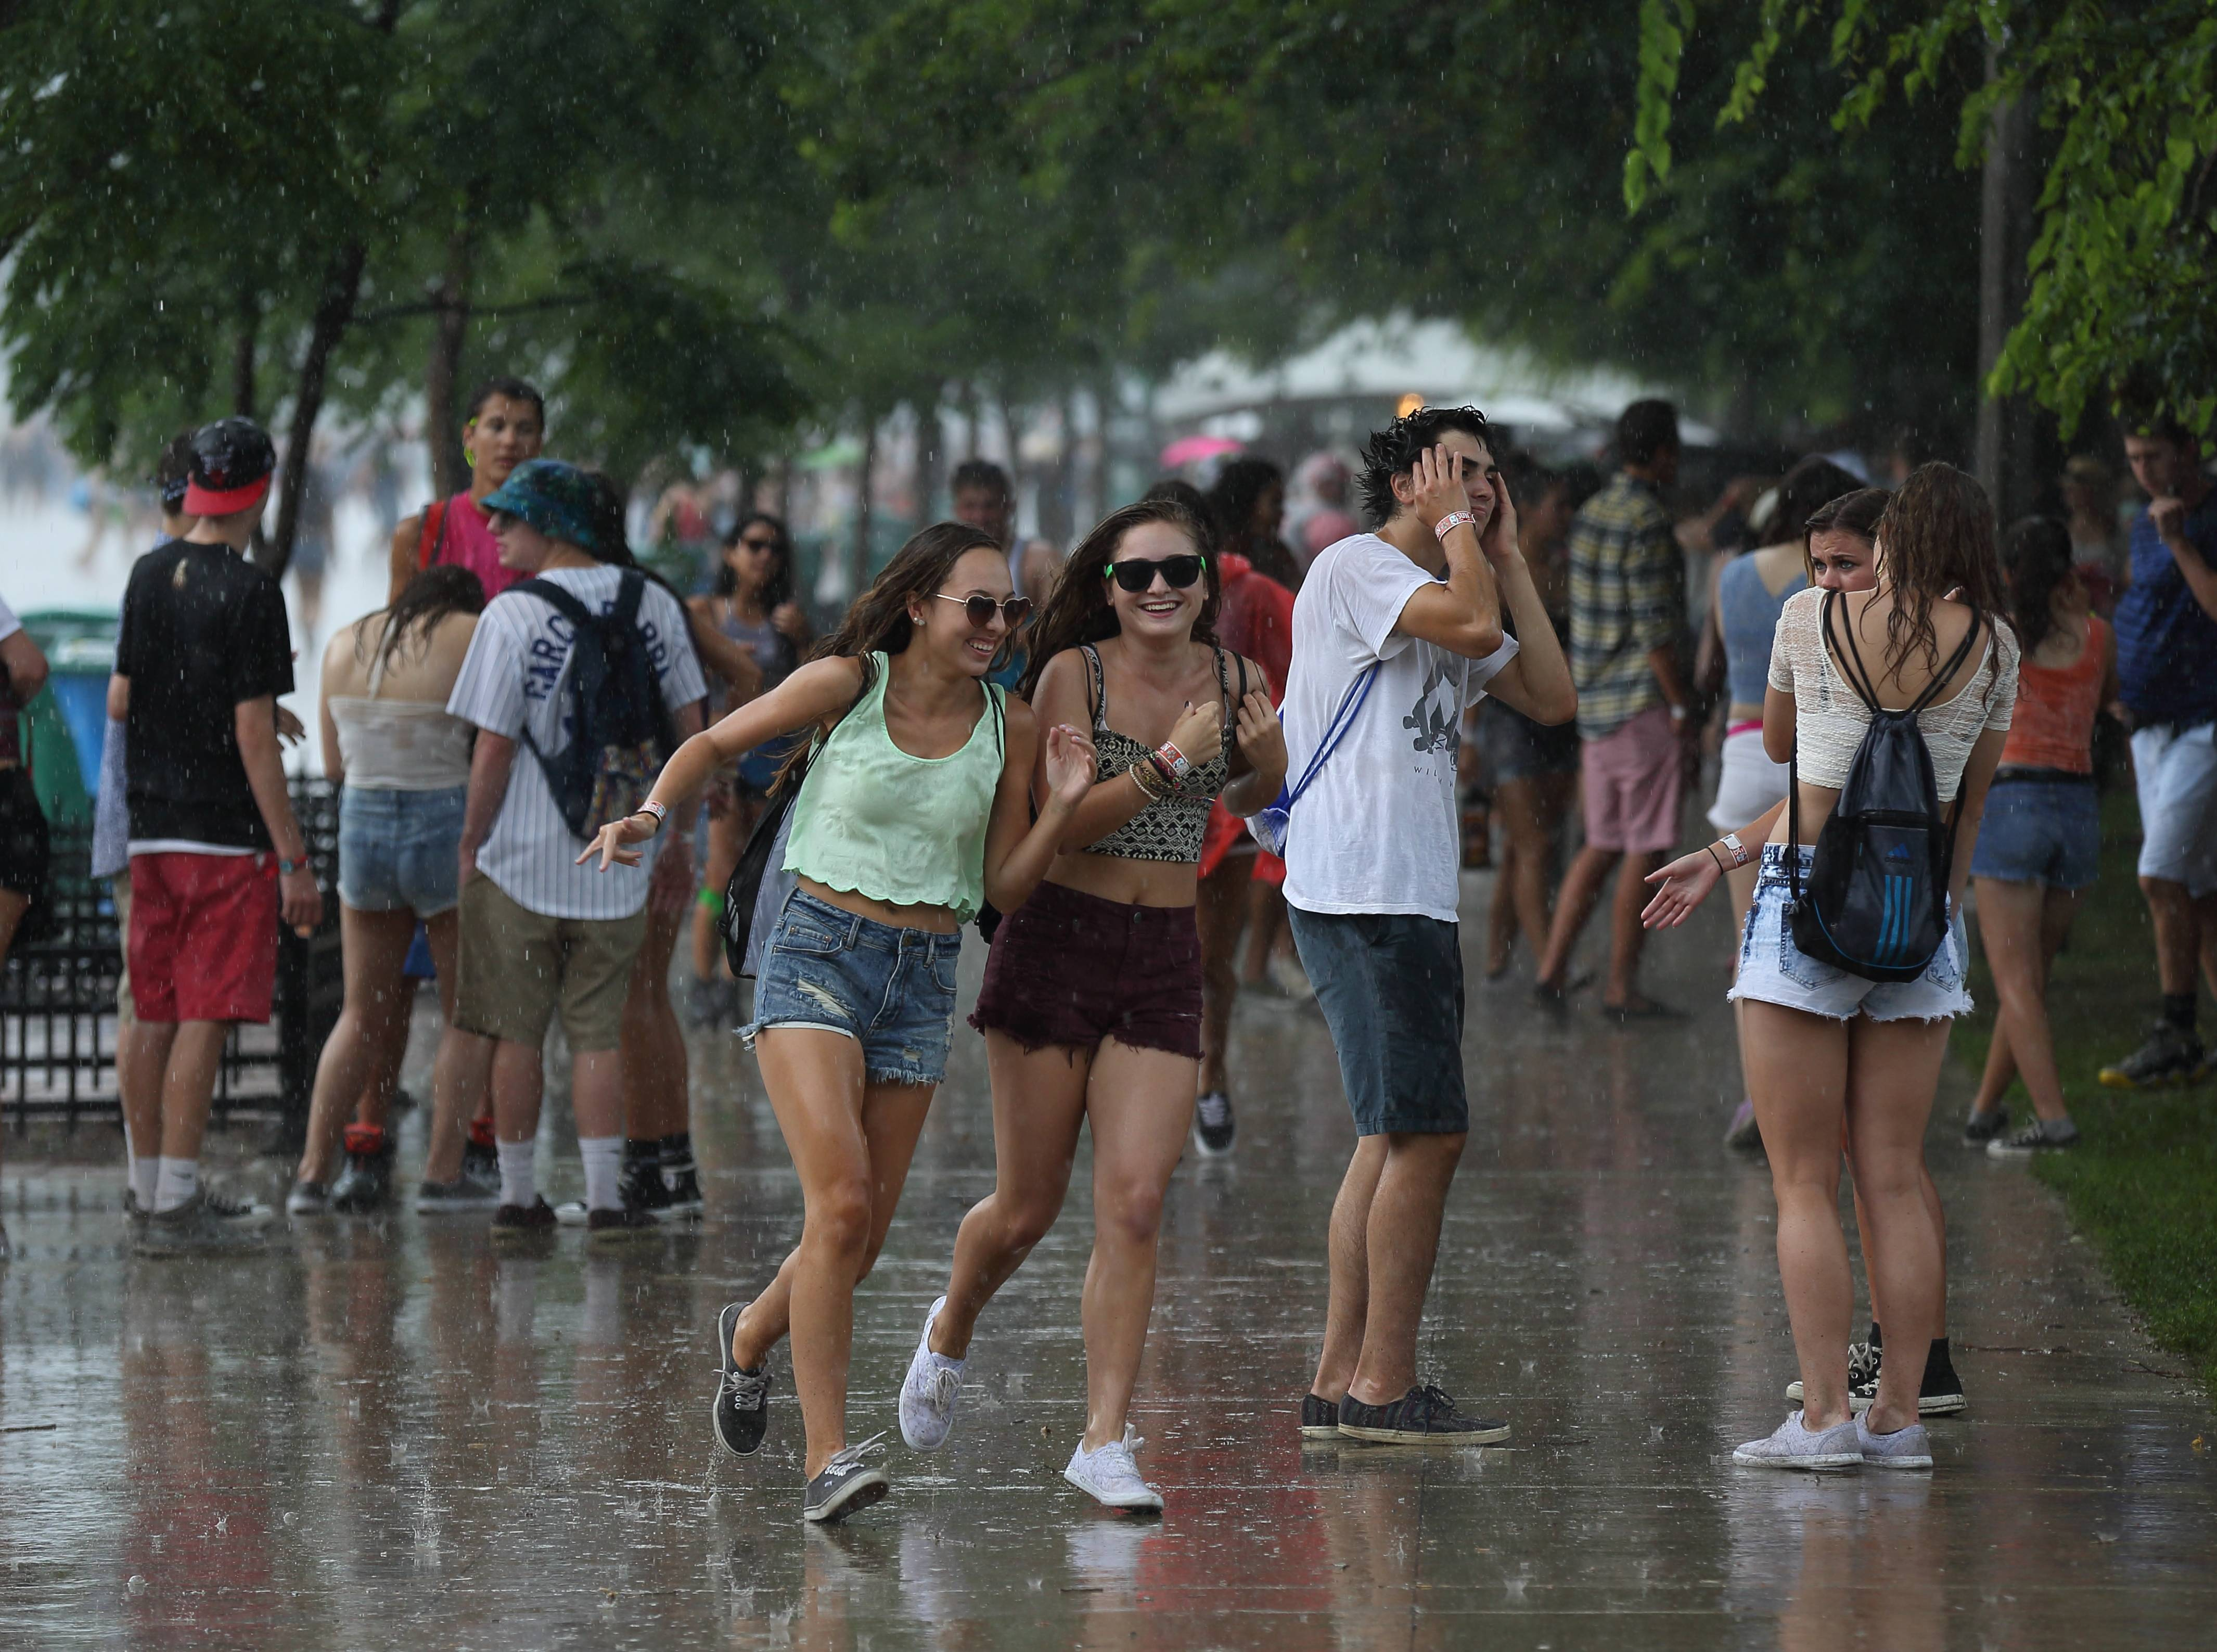 Lollapalooza attendees look for cover as rain storms roll in Sunday at the Lollapalooza Music Festival in Chicago's Grant Park.